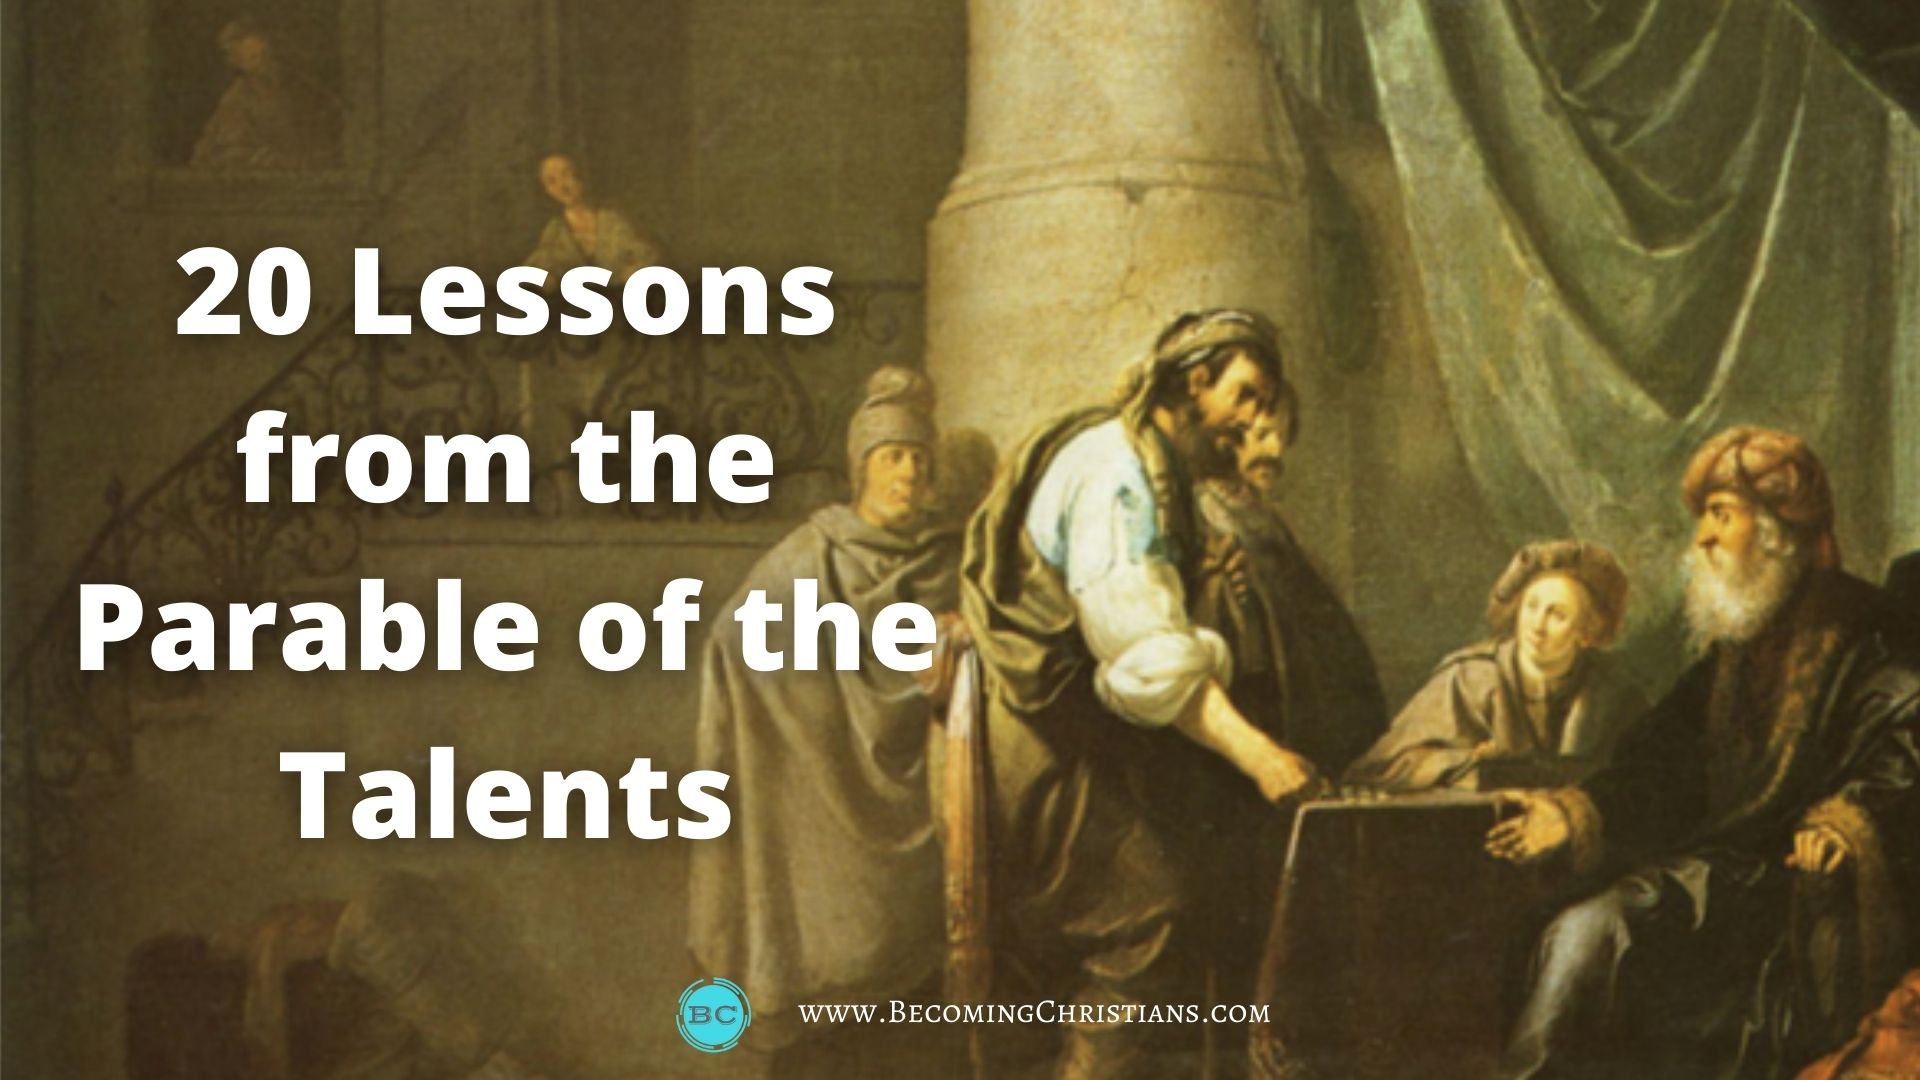 What are the lessons we can learn from the Parable of the Talents?